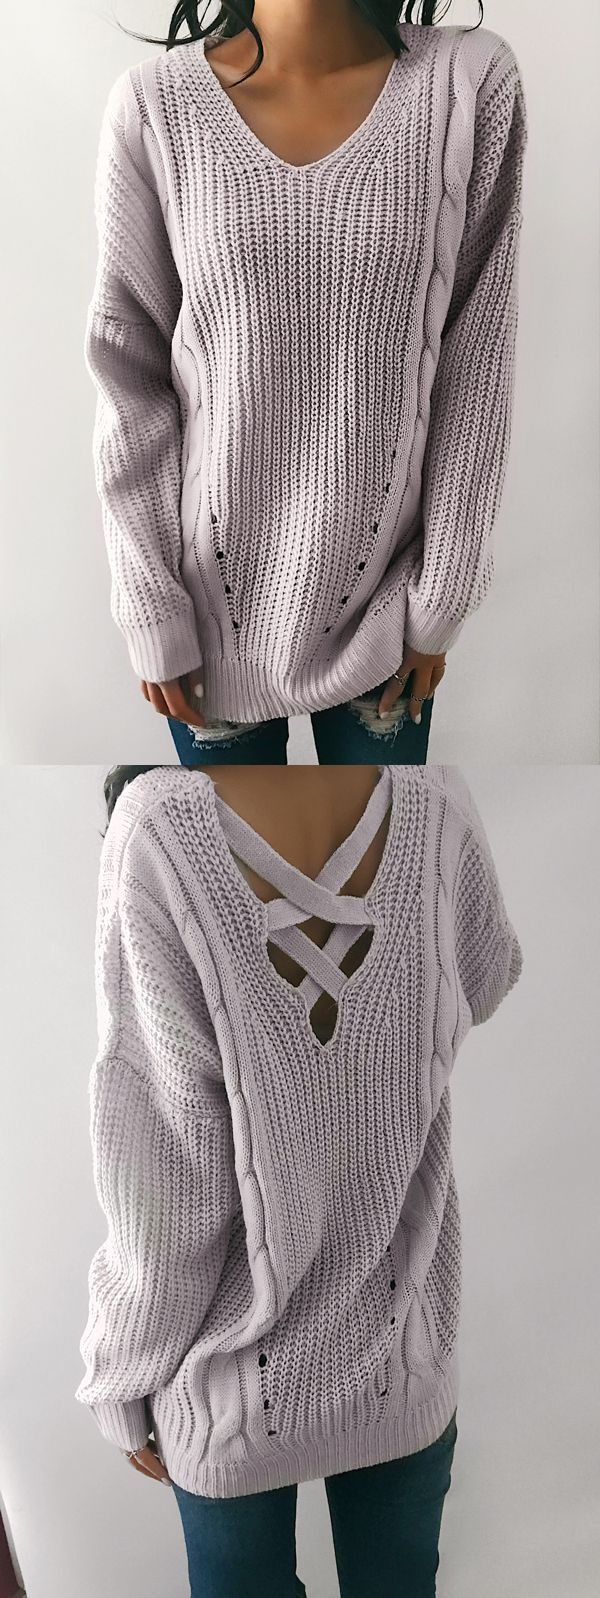 $38.99! Chicnico Sexy Halter Solid Color Sweater.Get ready for Fall fashion! Find fashionable outfits for the new season.